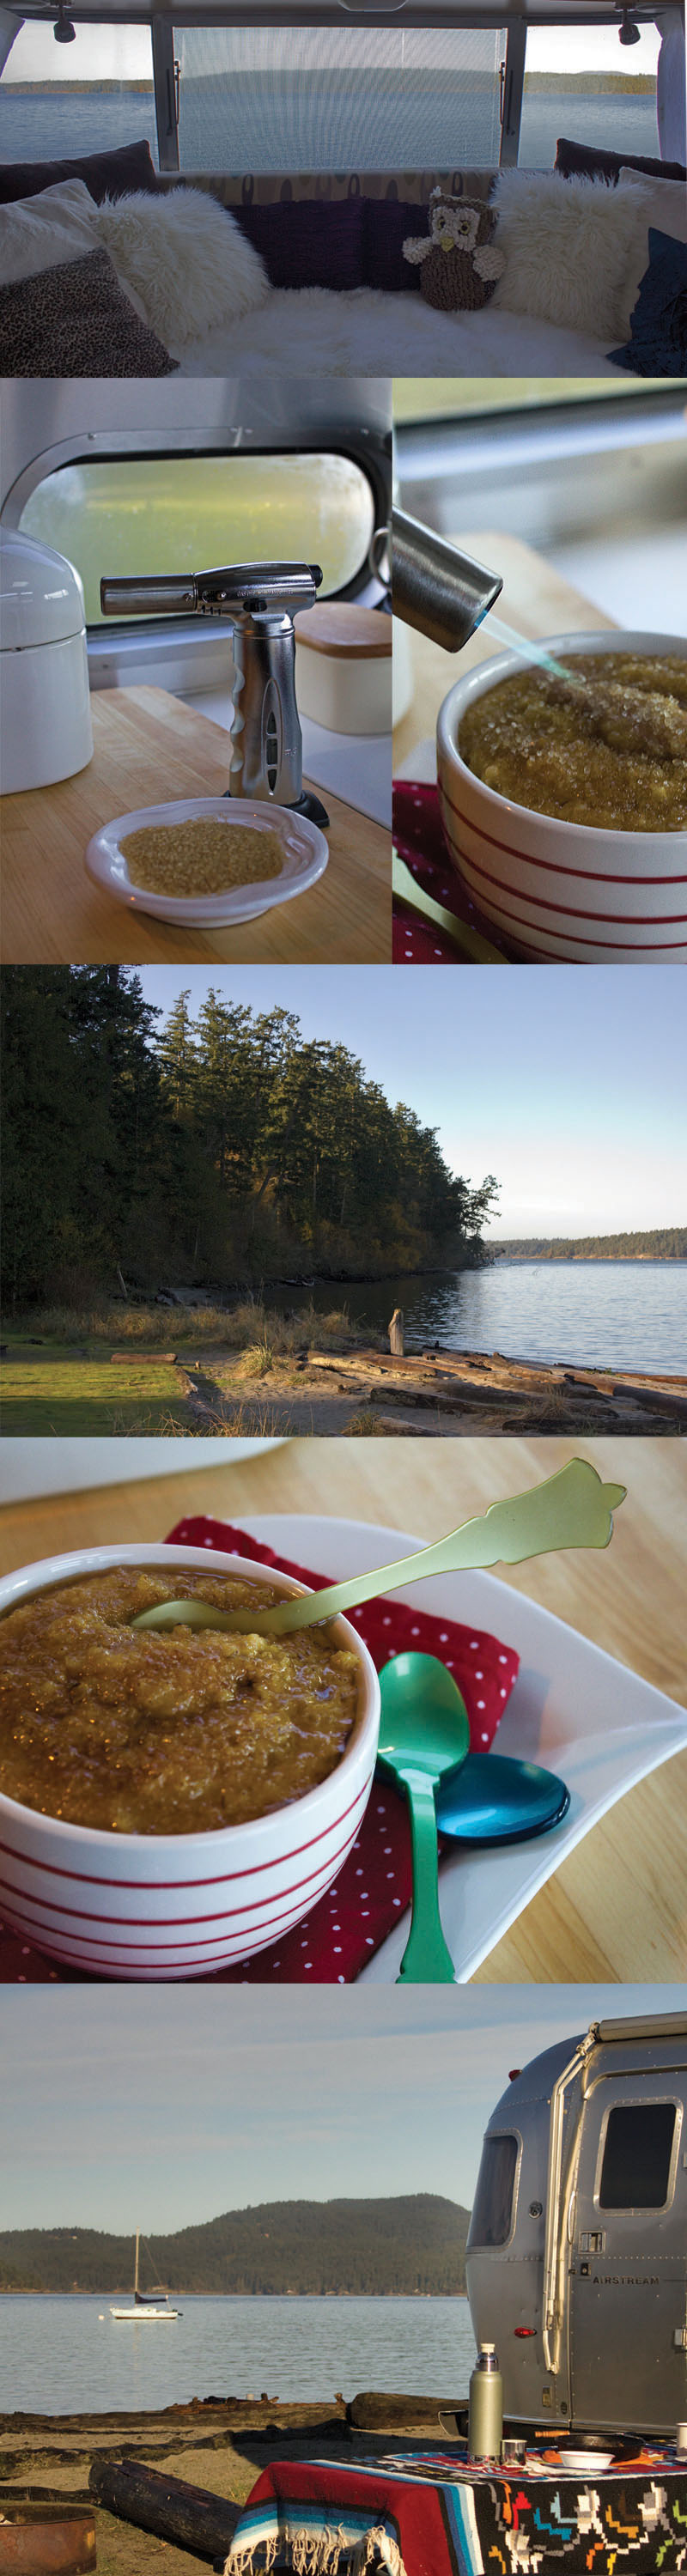 Breakfast on Lopez Island, WA State Odlin County Park